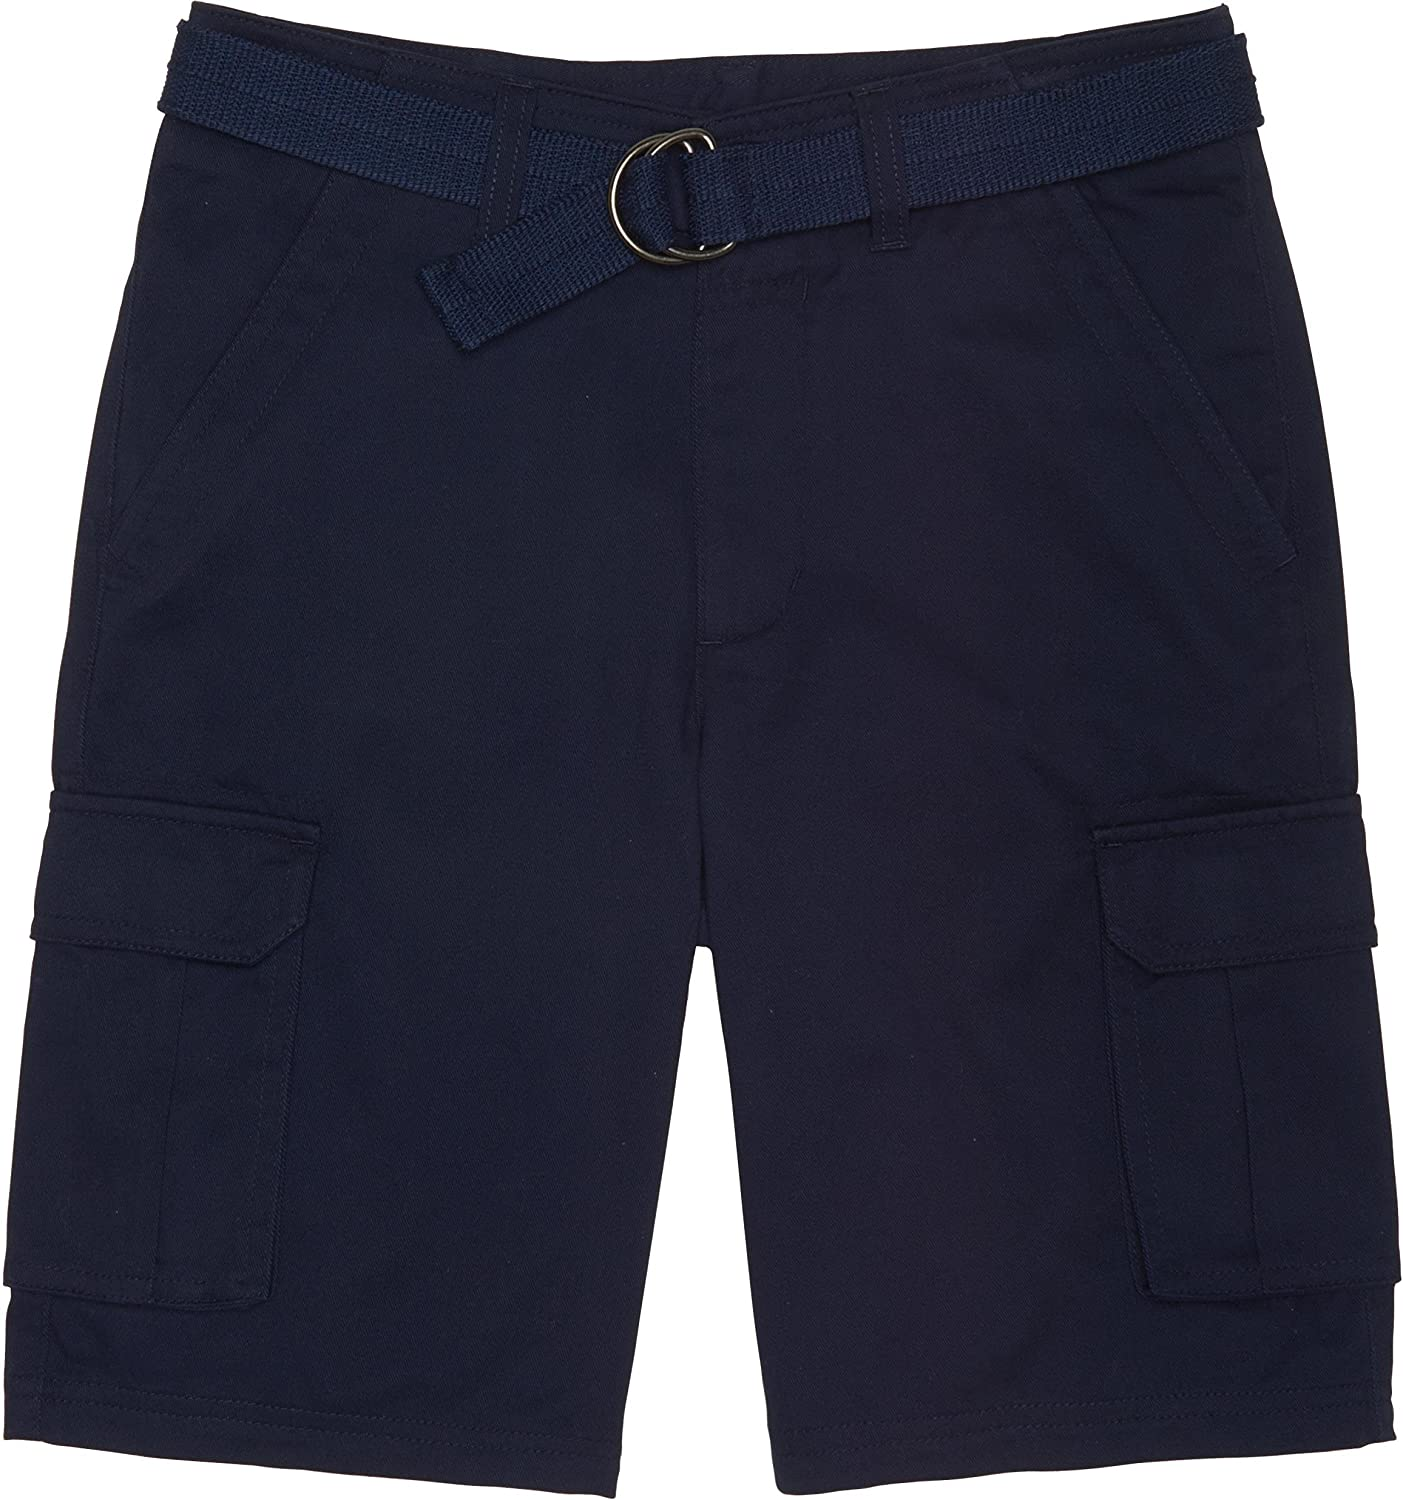 French Toast School Uniform Boys Belted Cargo Shorts H9243